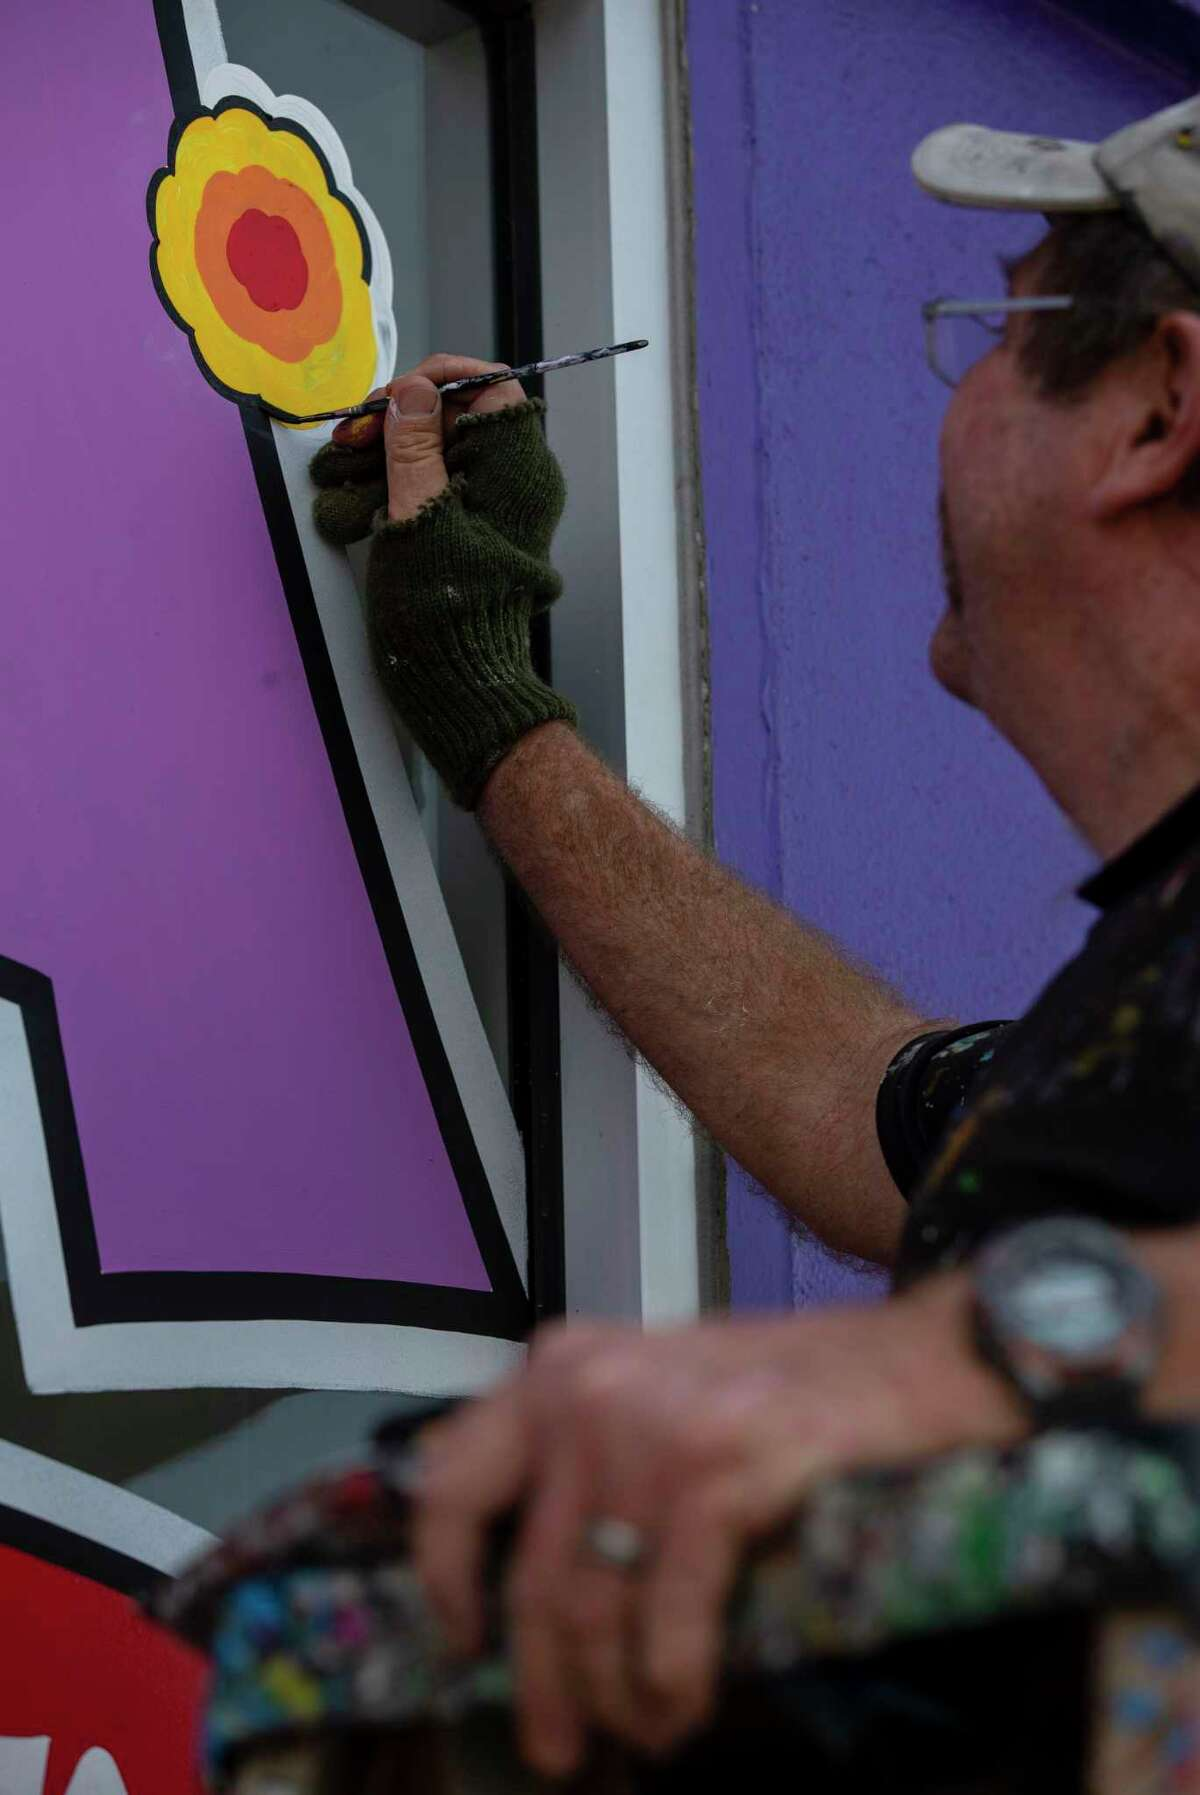 Robert Fassell paints an advertisement for Fiesta on the window of Amol's Party Supply in San Antonio, Texas, on March 13, 2020. Earlier on Friday, it was announced that the annual Fiesta celebrations in San Antonio, normally held in April, will be postponed until November this year due to concerns of coronavirus.